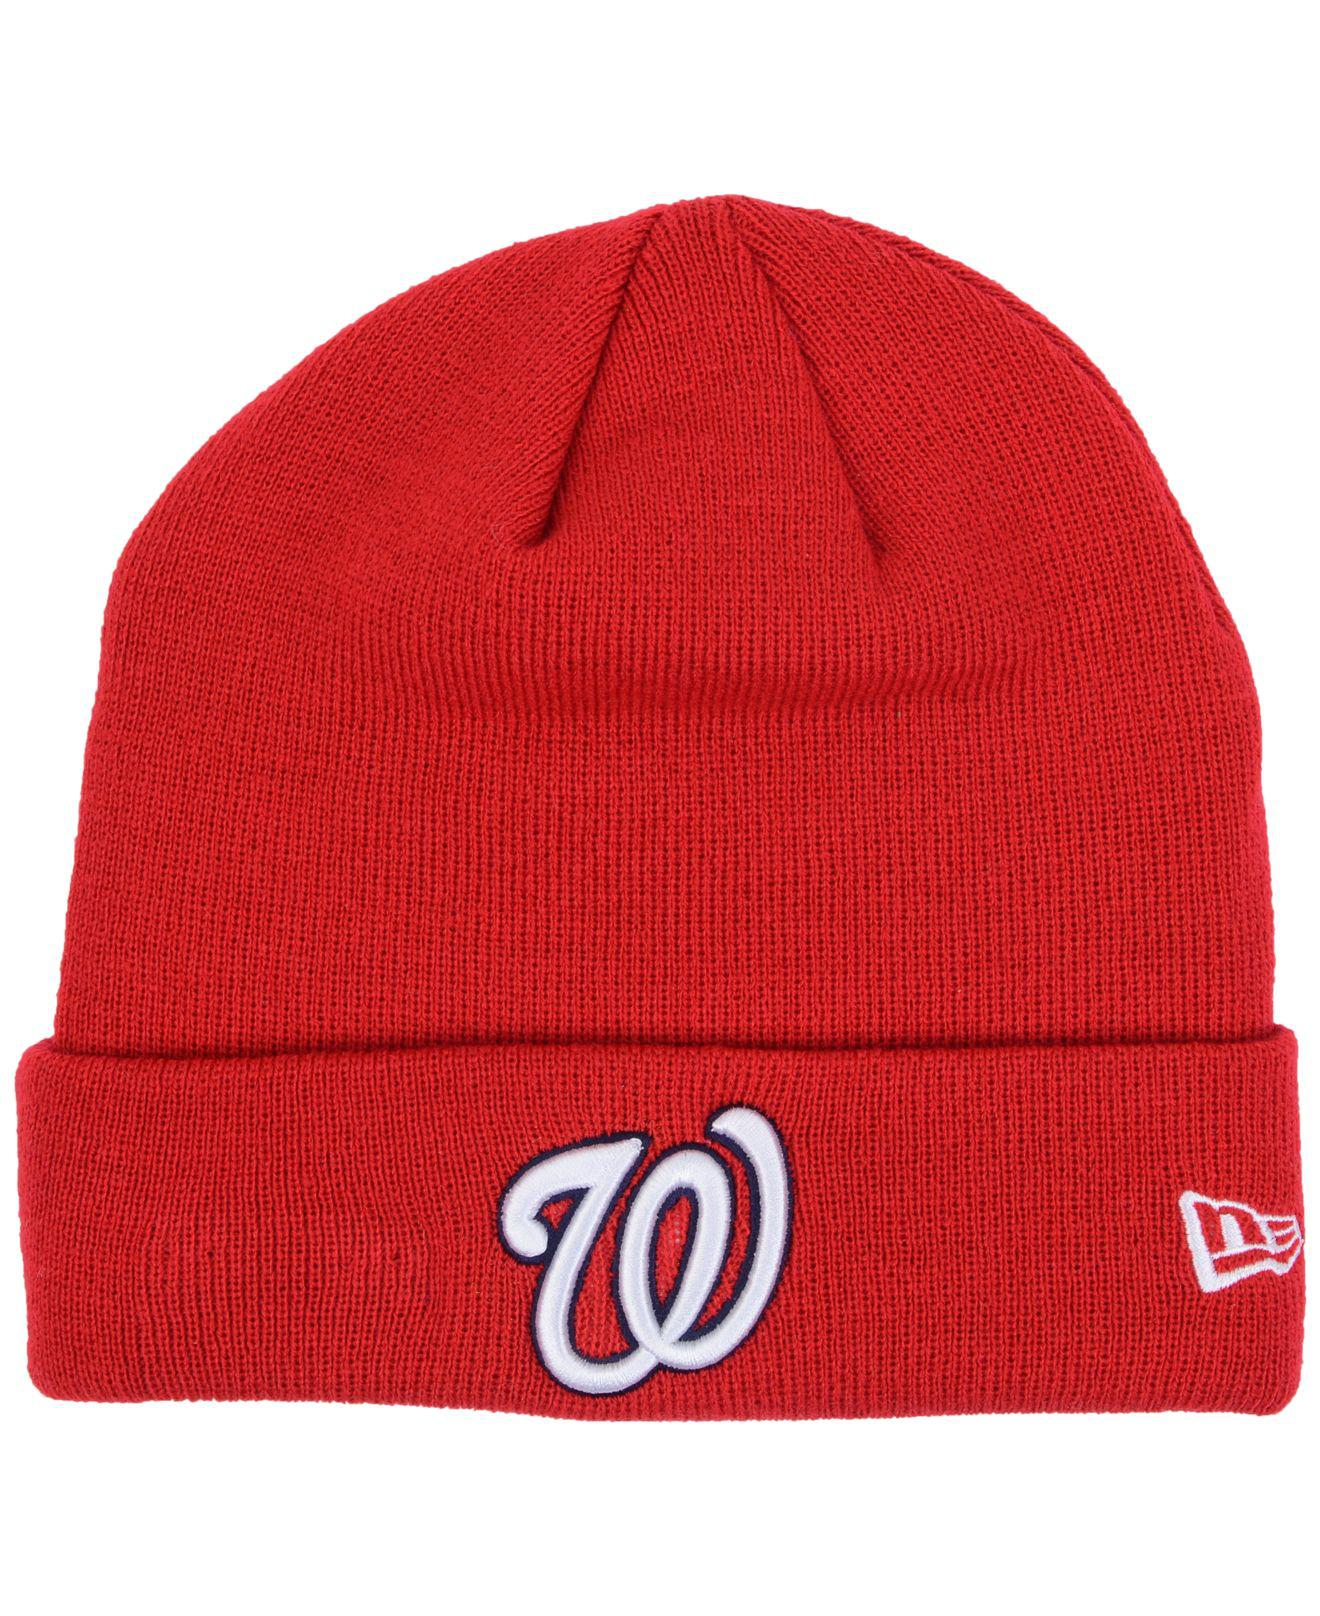 88a0cd48e02 Lyst - KTZ Washington Nationals Basic Cuffed Knit Hat in Red for Men